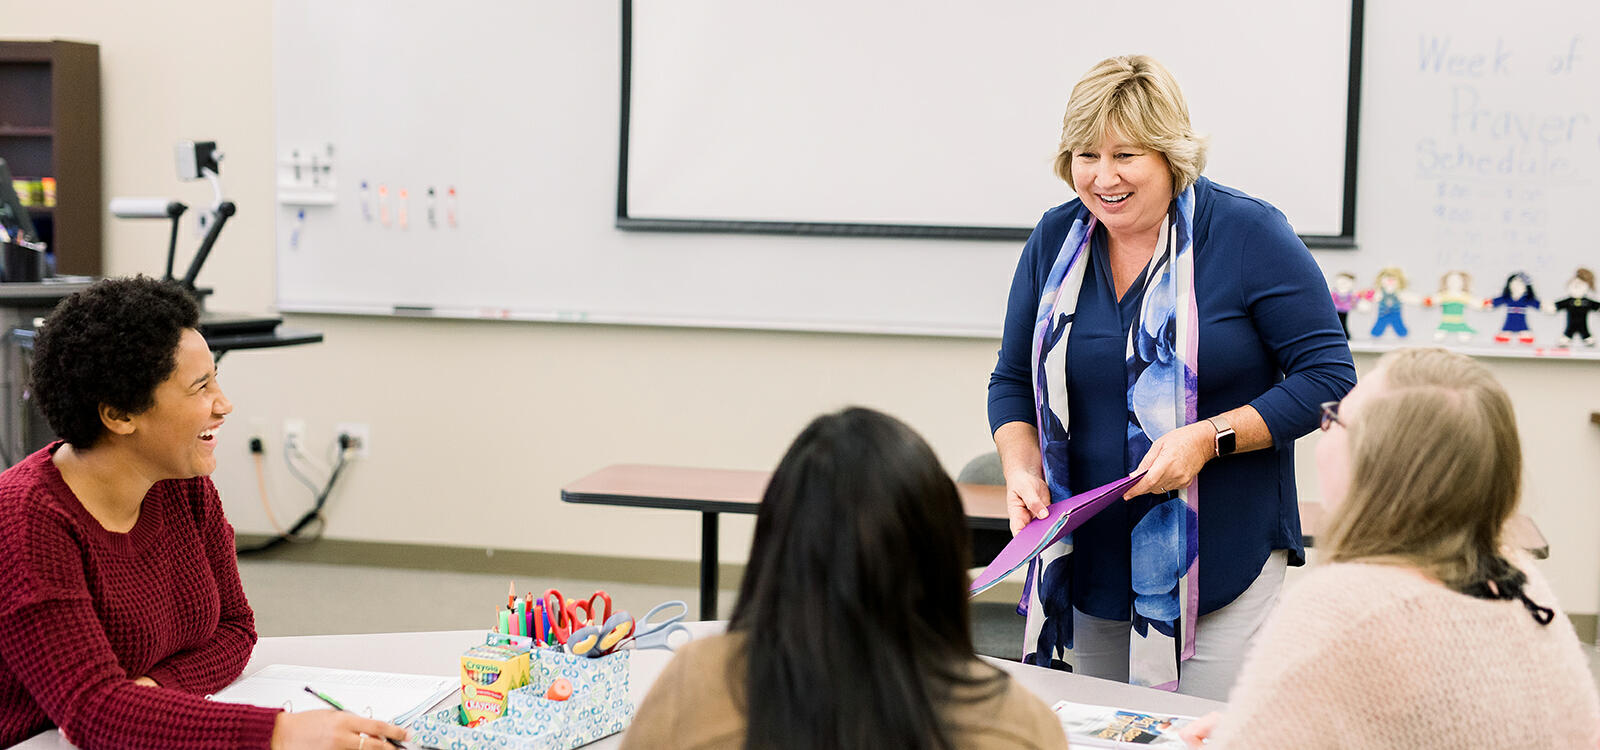 A professor laughs as she stands in front of three seated students who are interacting with her